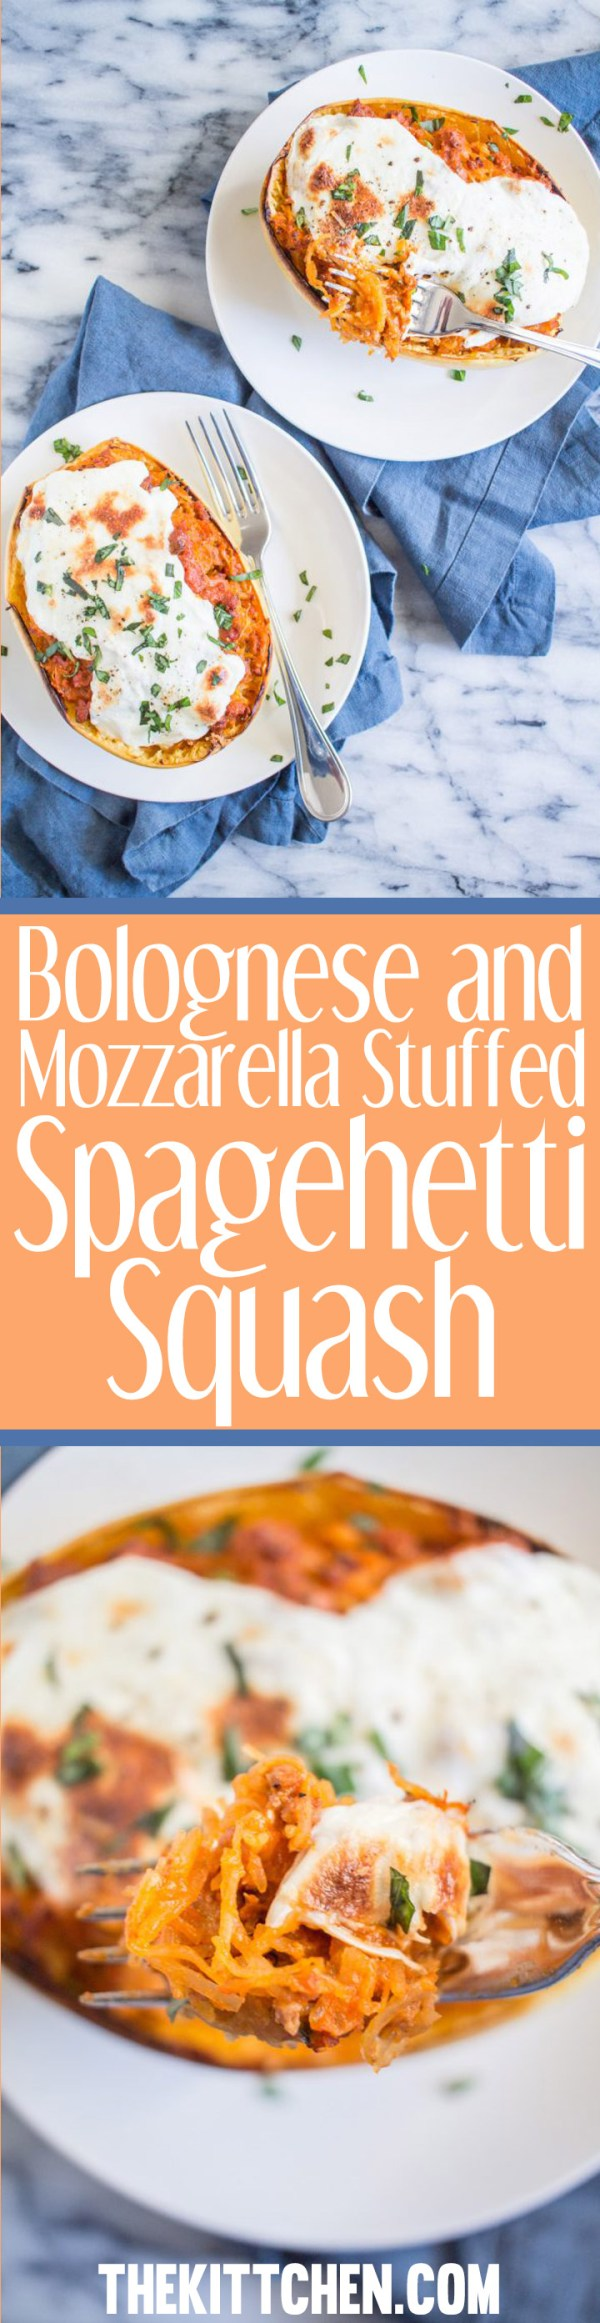 Bolognese and Mozzarella Stuffed Spaghetti Squash - a delicious dinner recipe that your family will love!